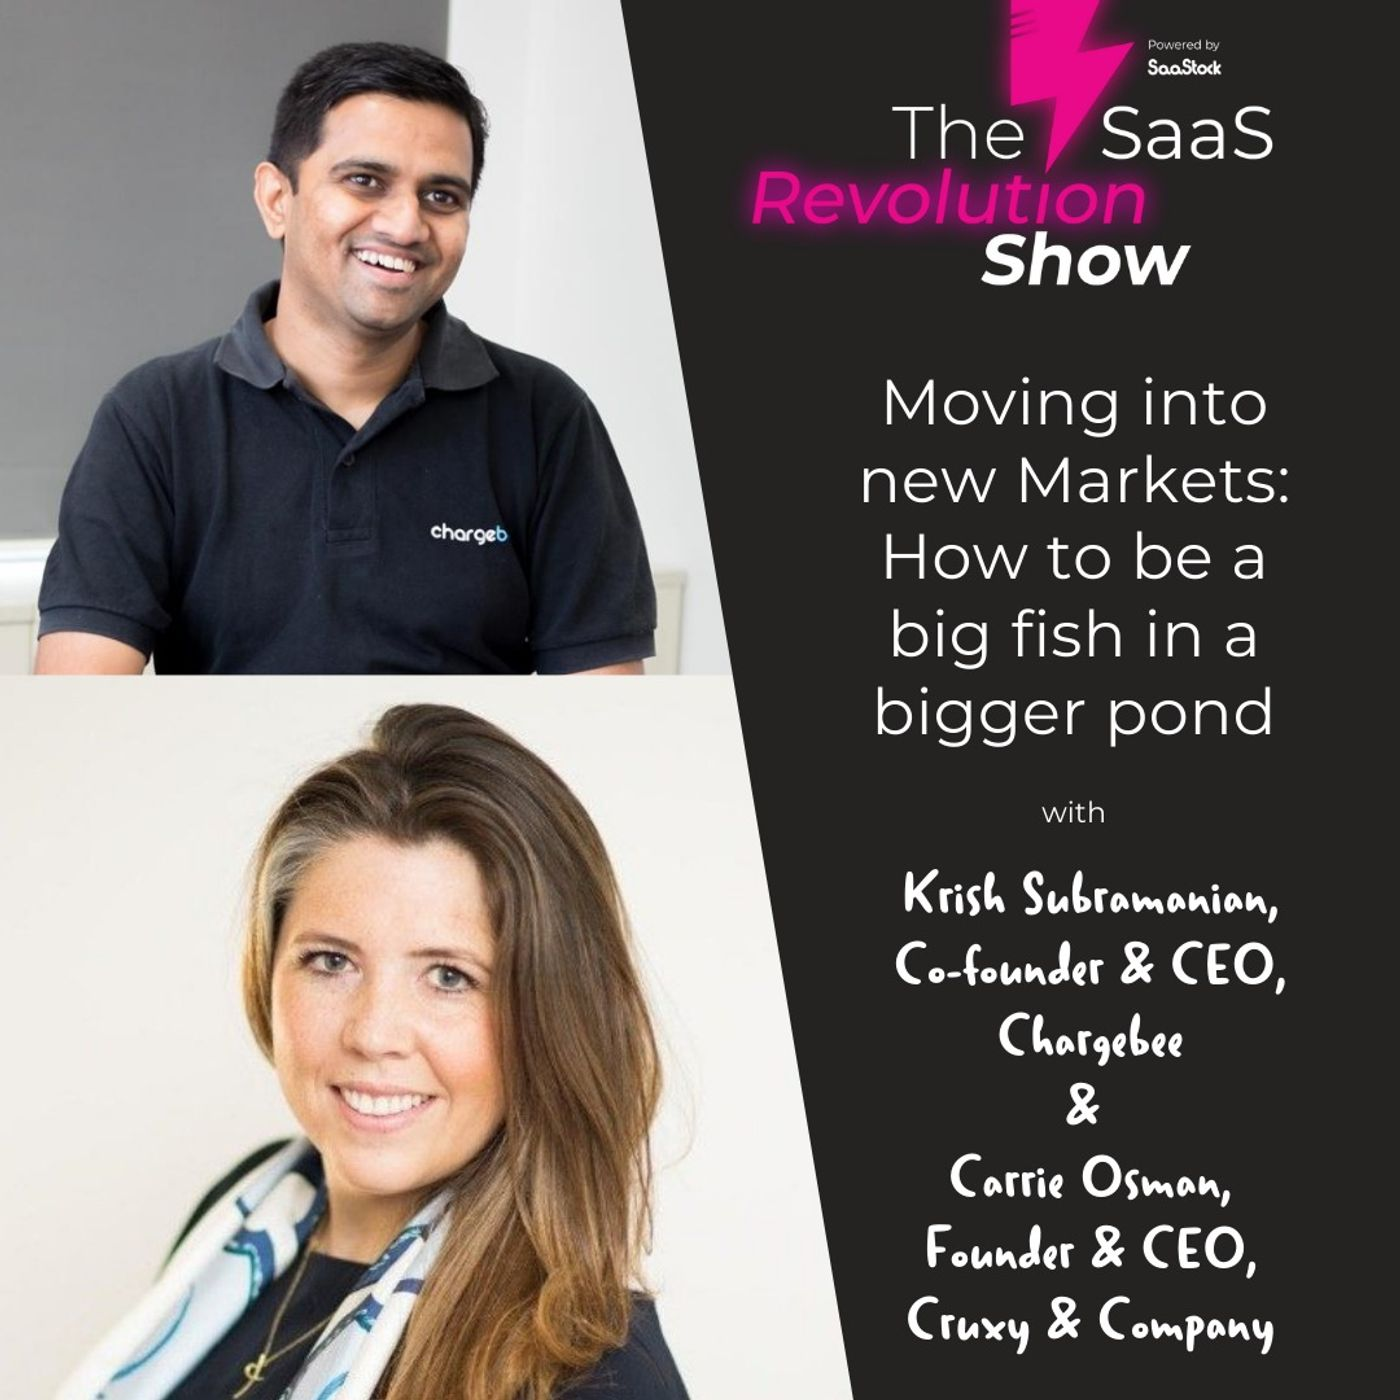 Moving into New Markets: How to be a Big Fish in a Bigger Pond, with Krish Subramanian (CEO, Chargebee) & Carrie Osman (CEO & Founder, Cruxy & Company)